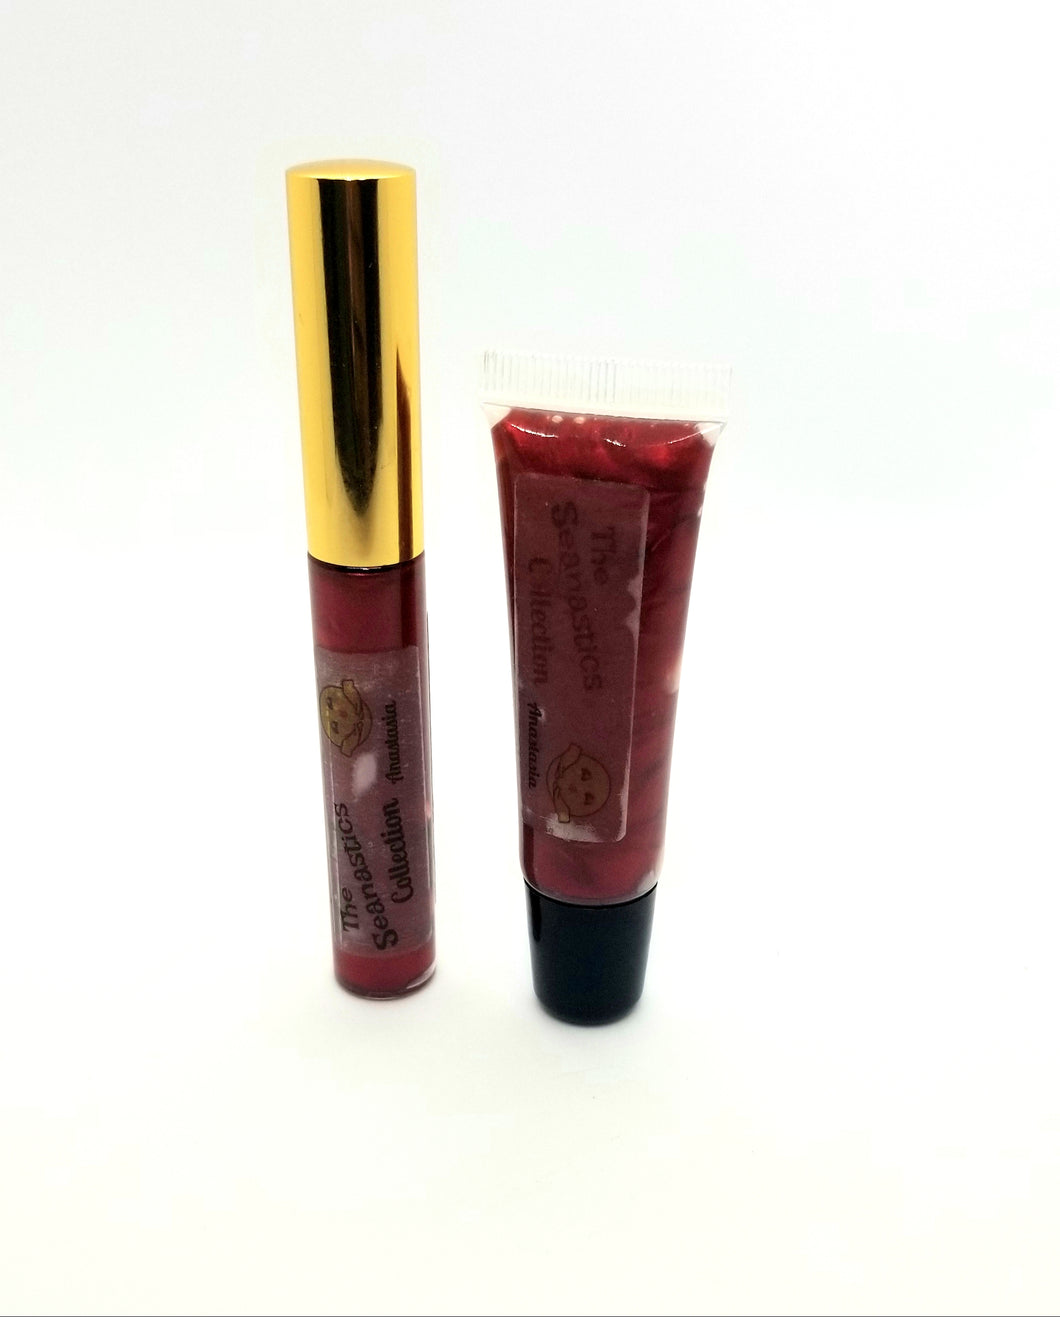 Anastasia Lip Gloss